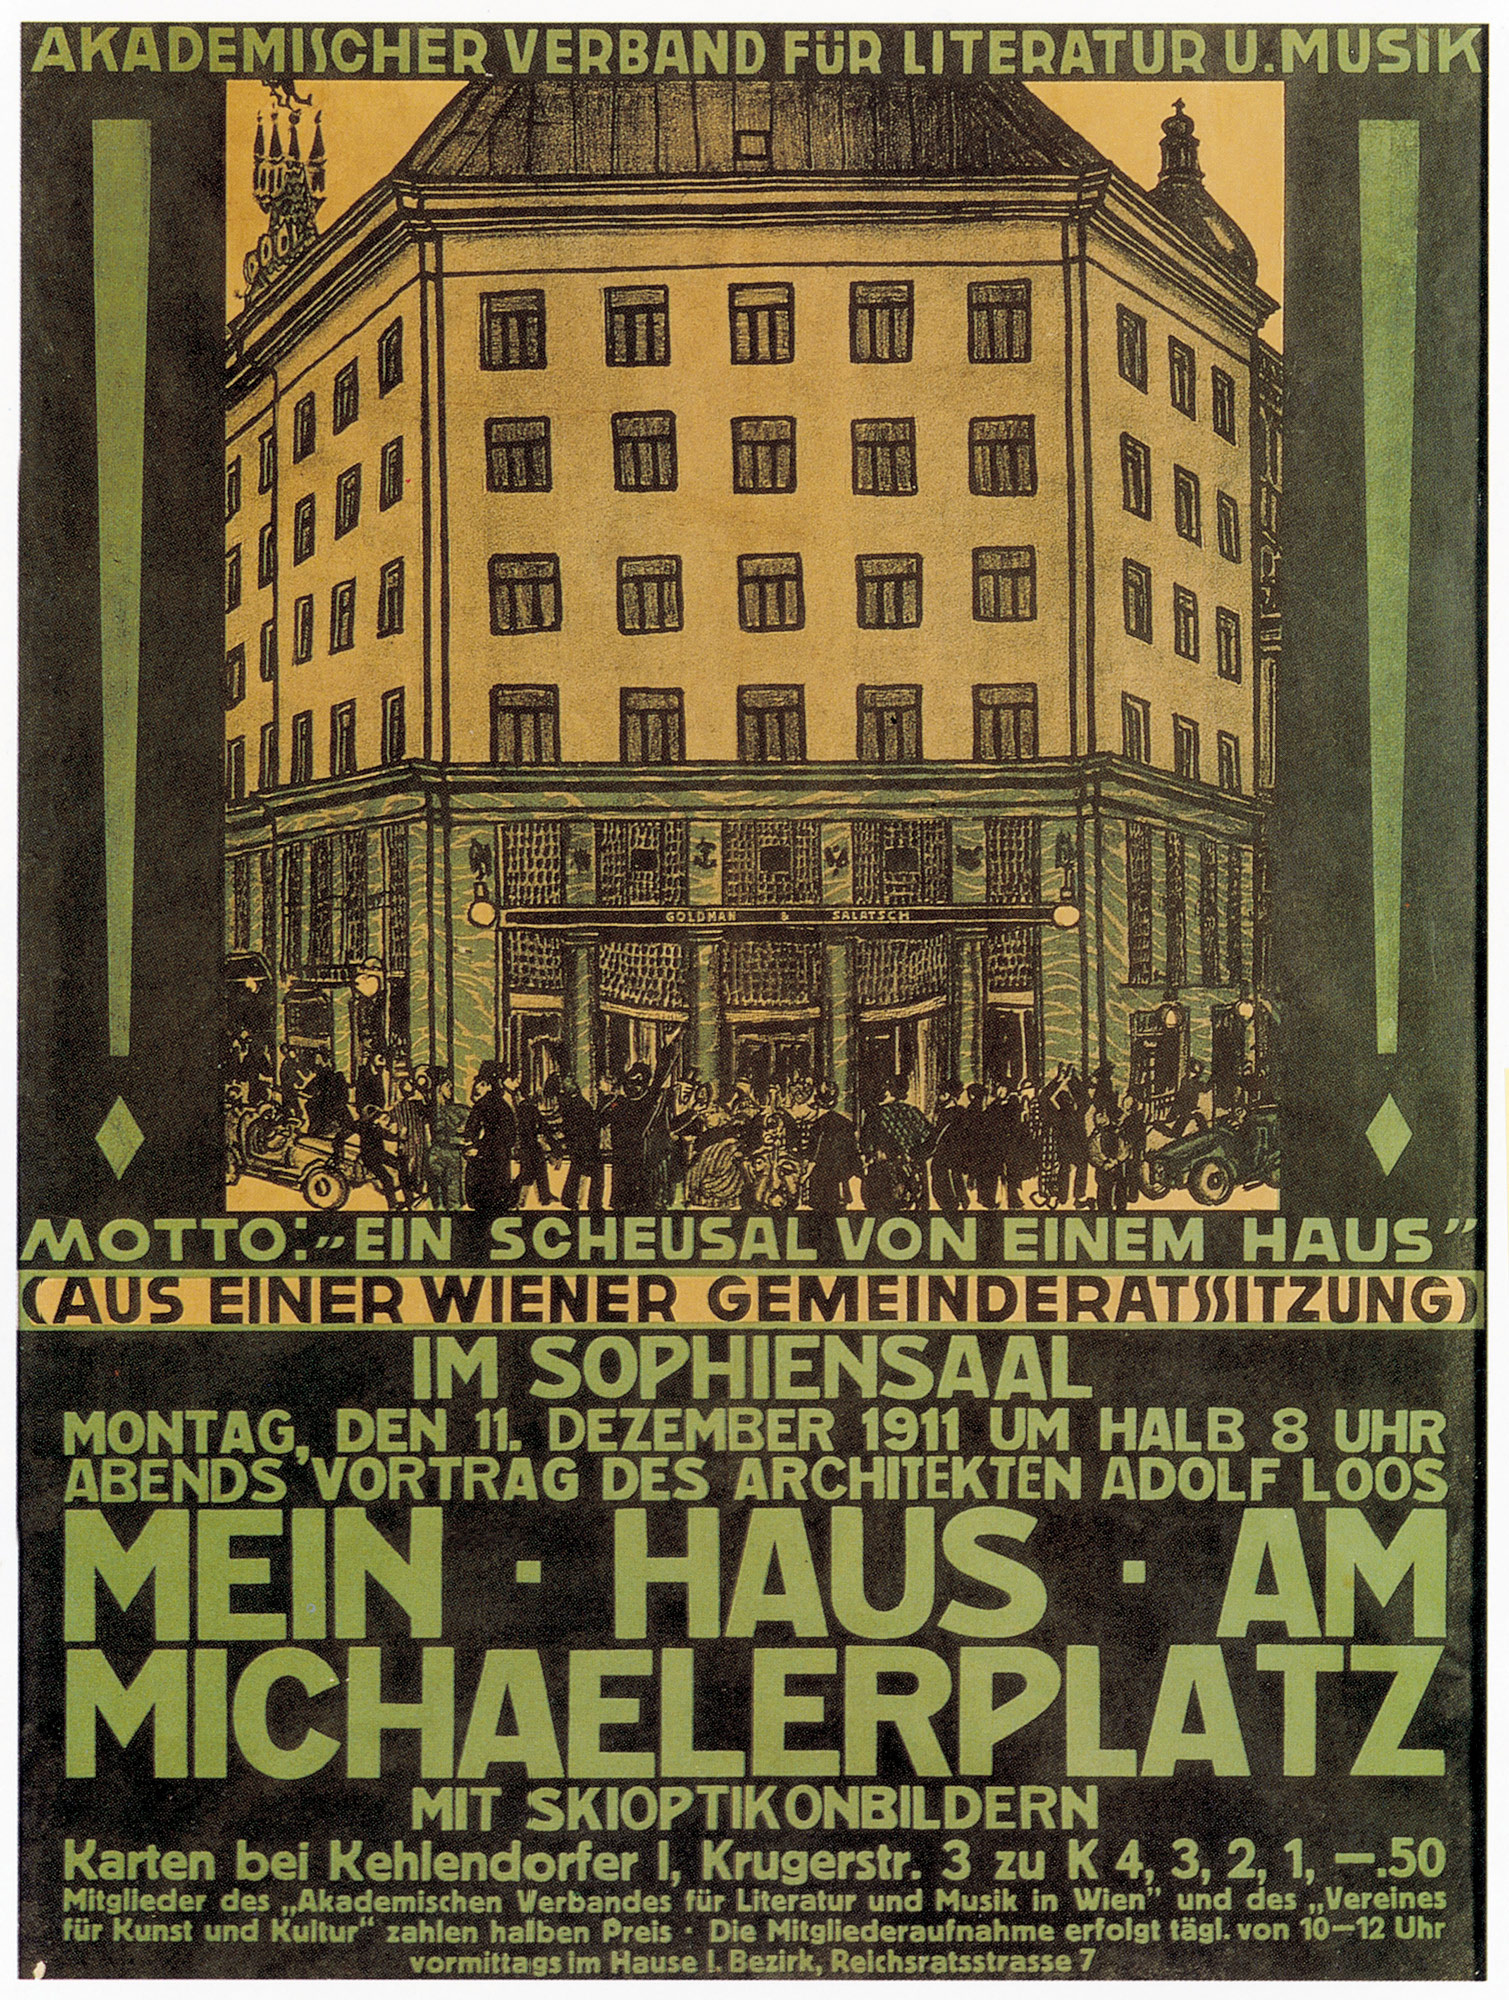 Poster for a lecture: 'My House on Michaelerplatz' (Mein Haus am Michaelerplatz) by Adolf Loos